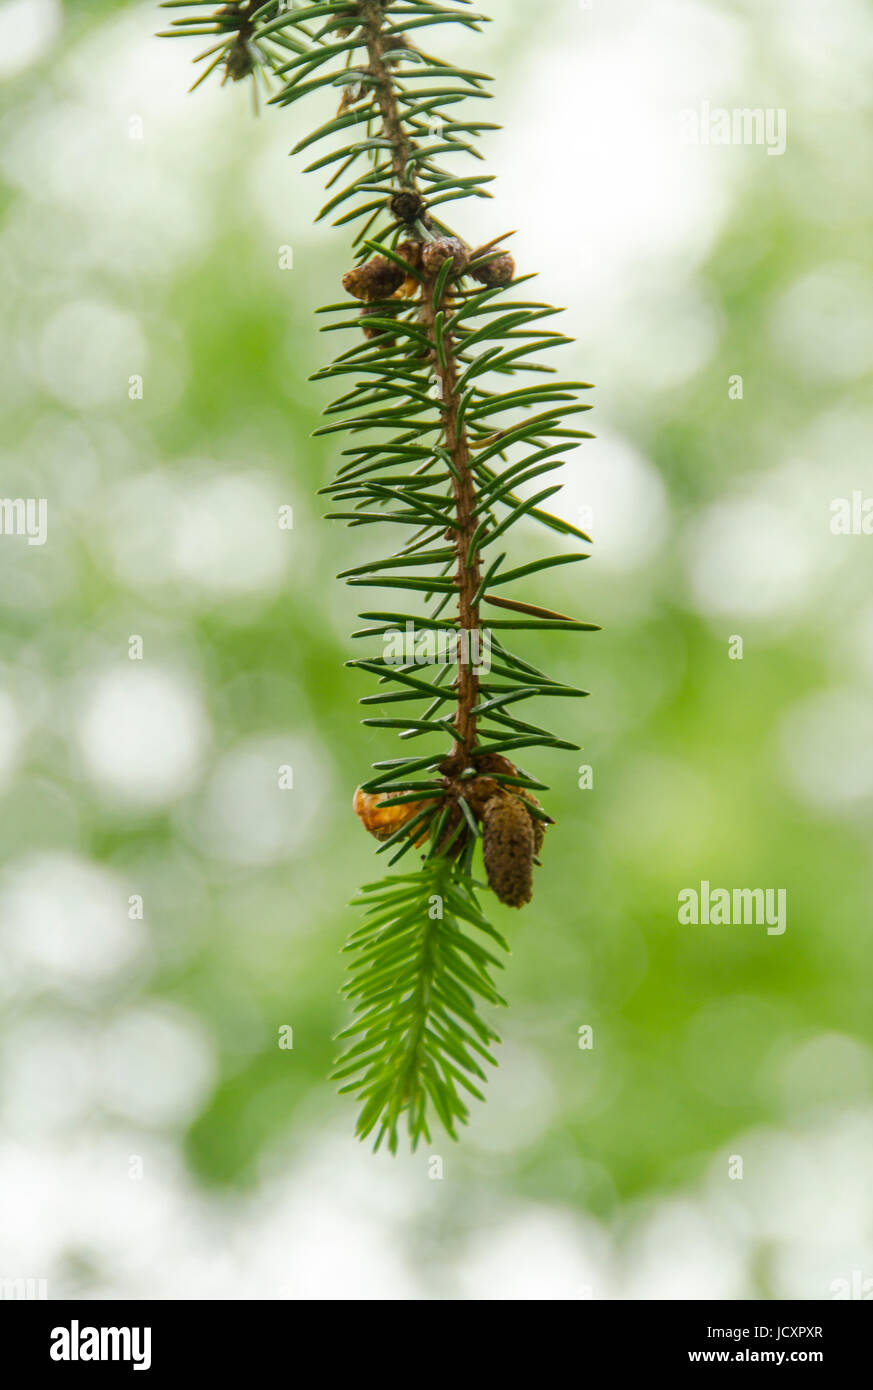 Norway spruce twig with flowers - Stock Image